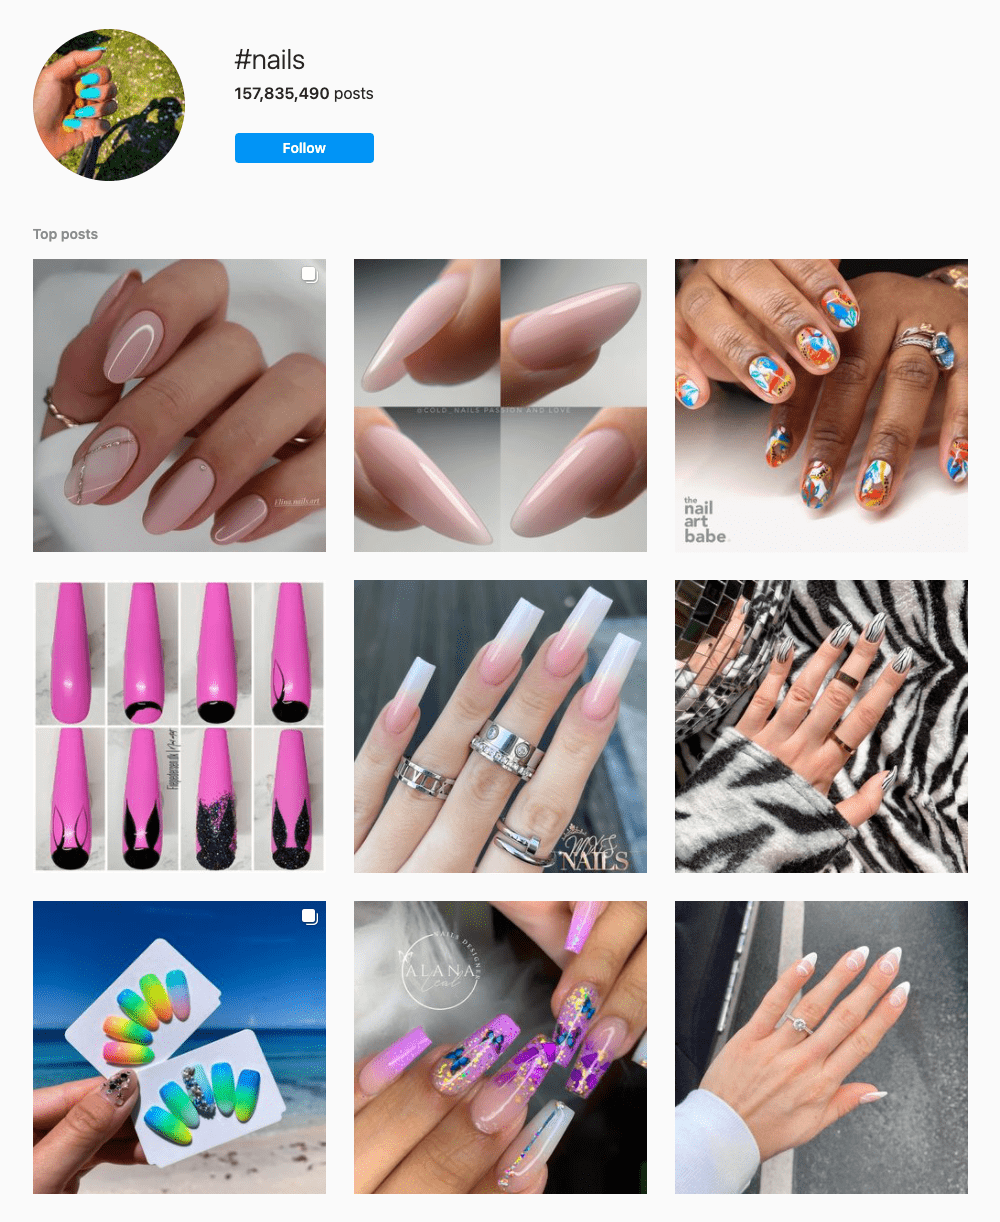 #nails Hashtags for Instagram